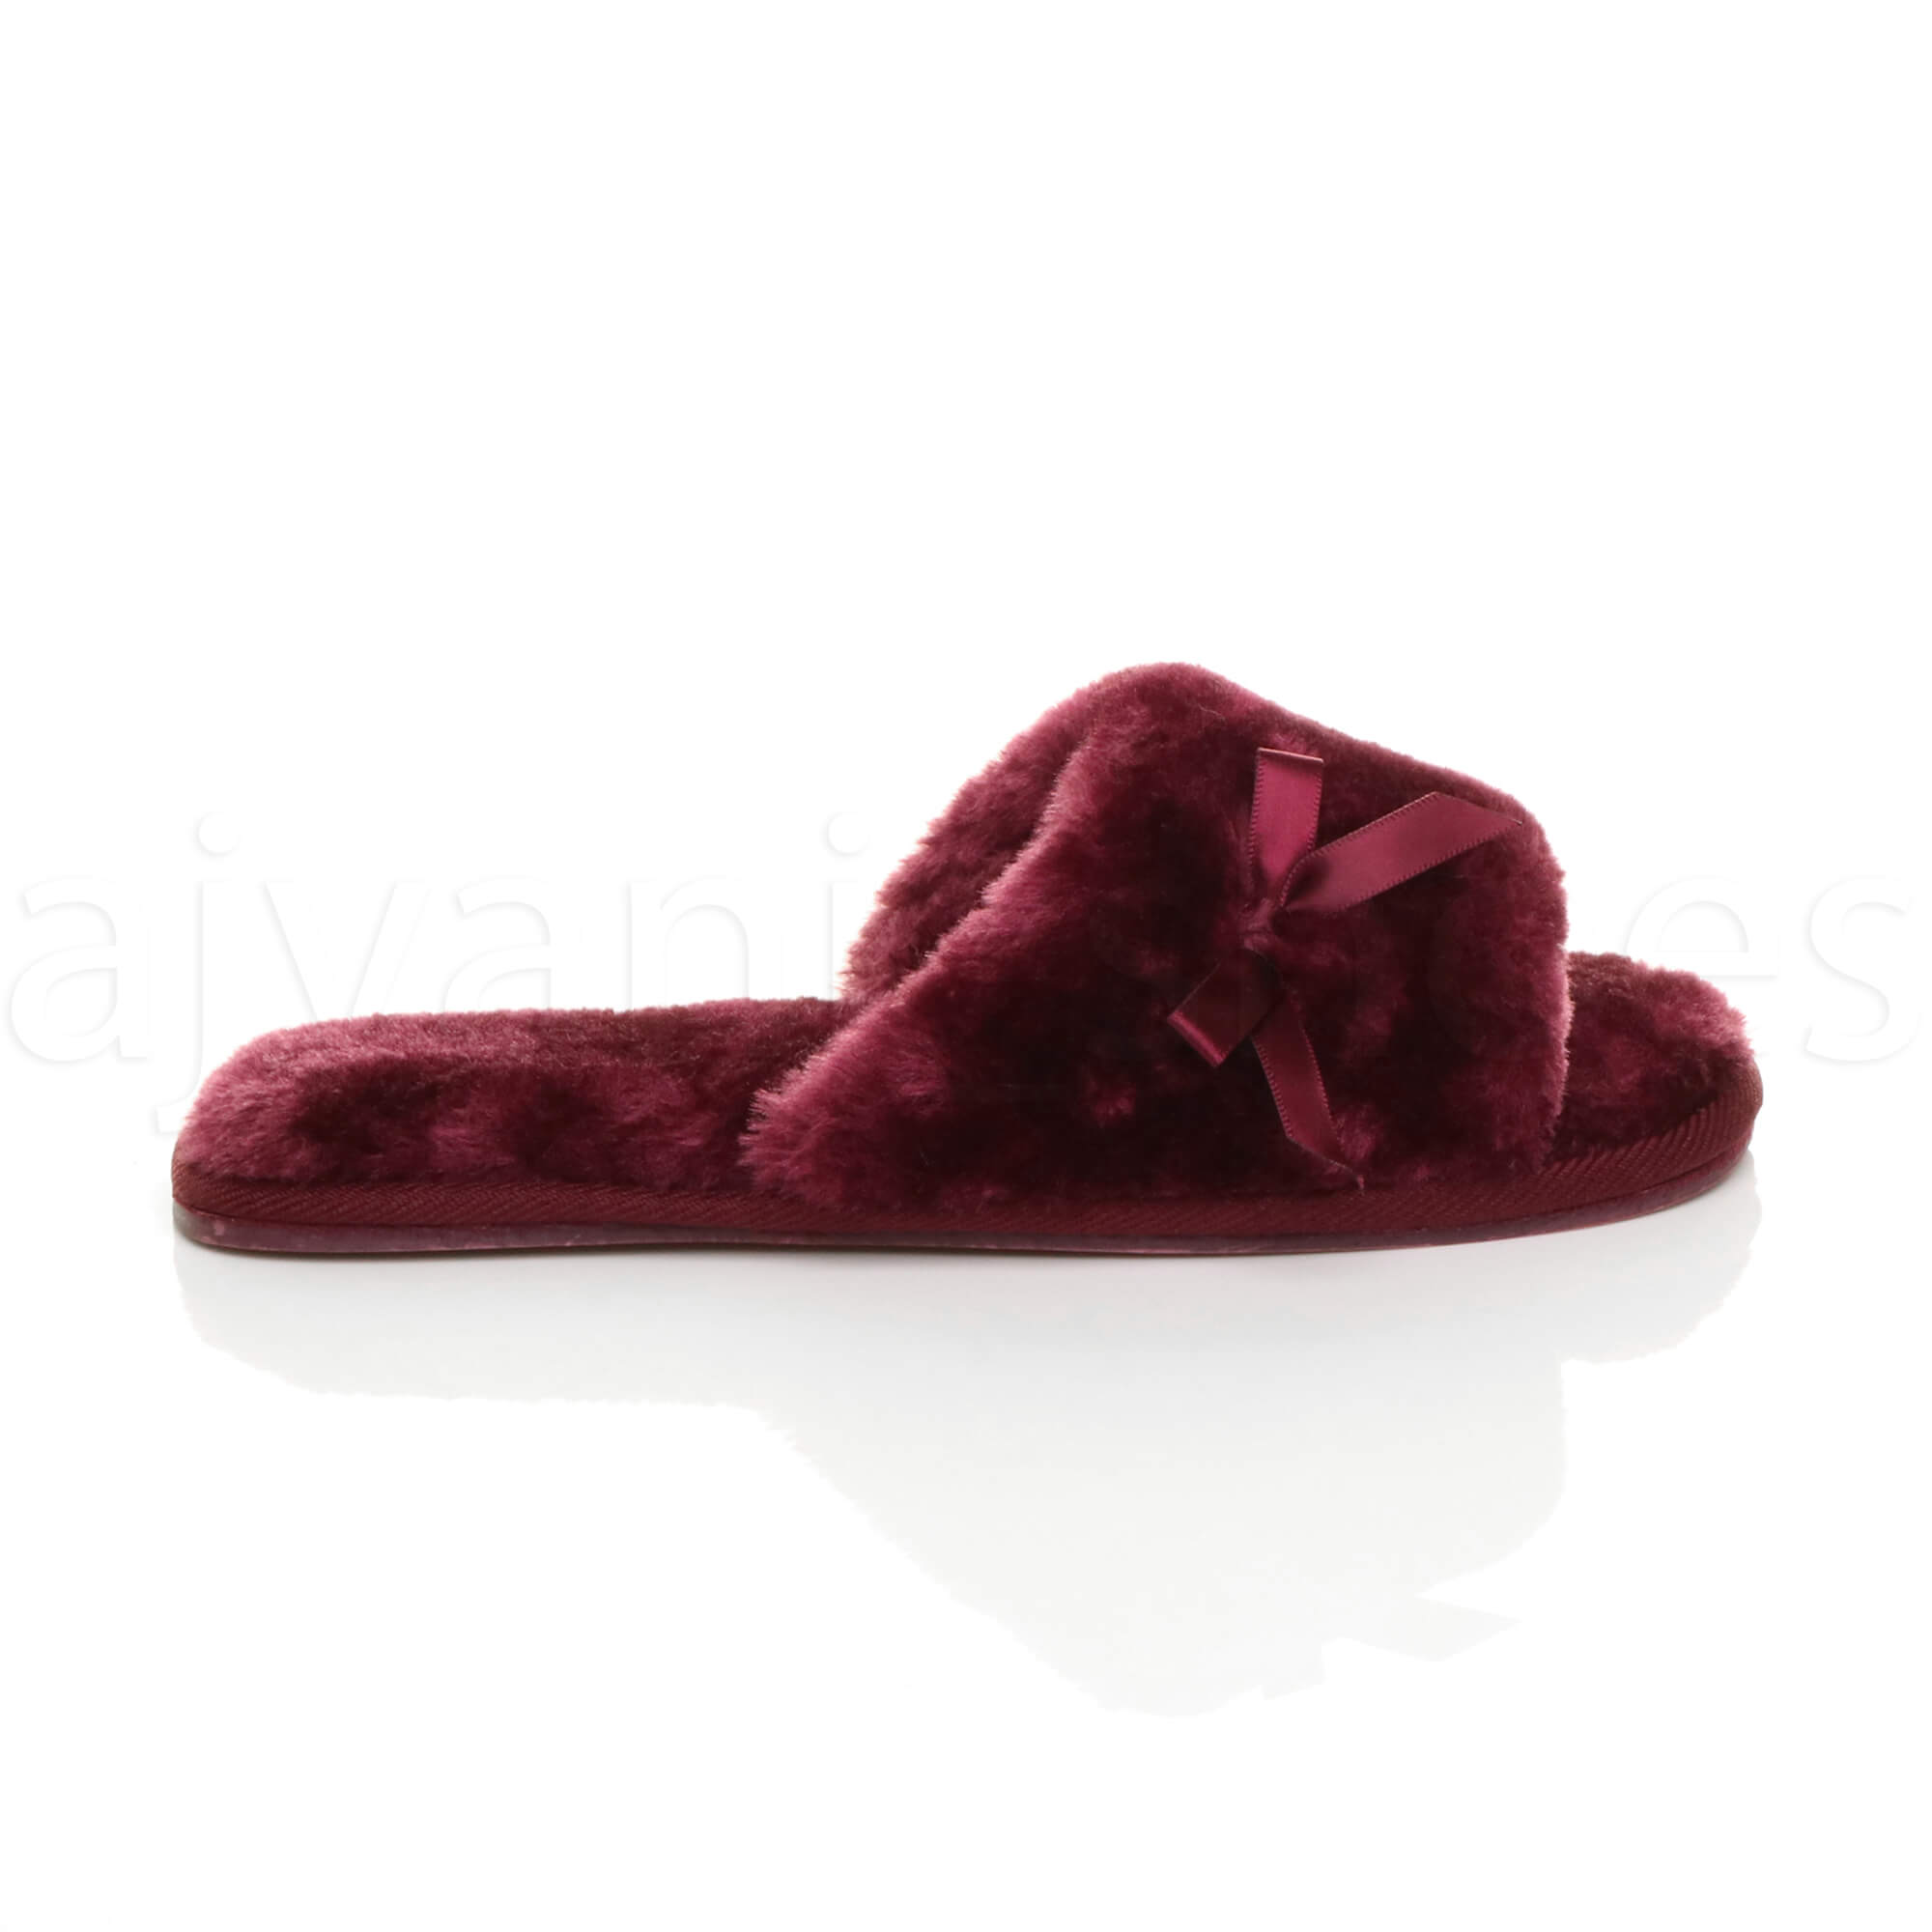 WOMENS-LADIES-FLAT-PEEP-TOE-BOW-LUXURY-COSY-FUR-LINED-SLIP-ON-SLIPPERS-SIZE thumbnail 19